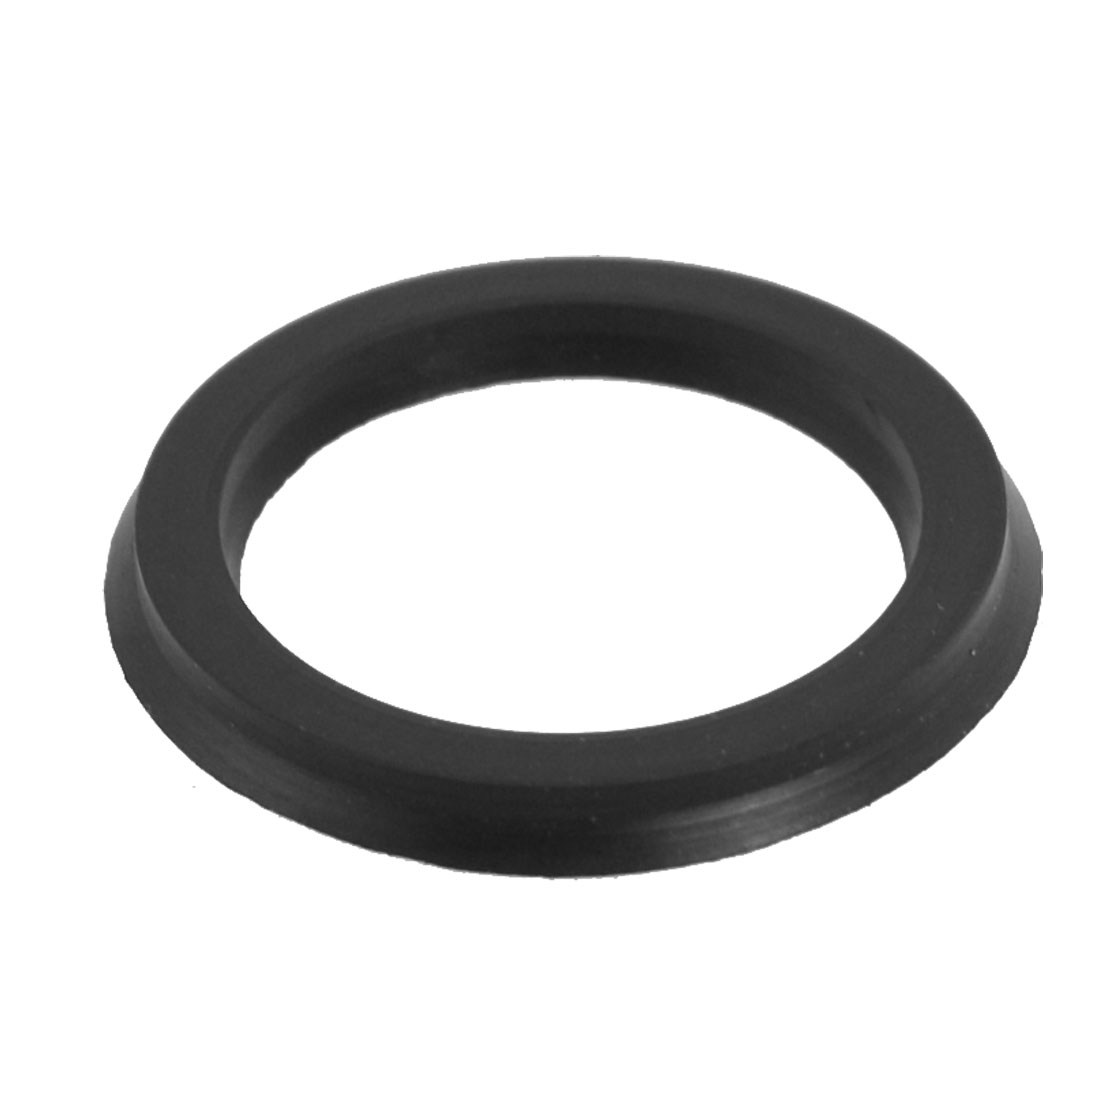 NBR Pneumatic Air Cylinder Piston Rod Seal 21x25x2.8mm